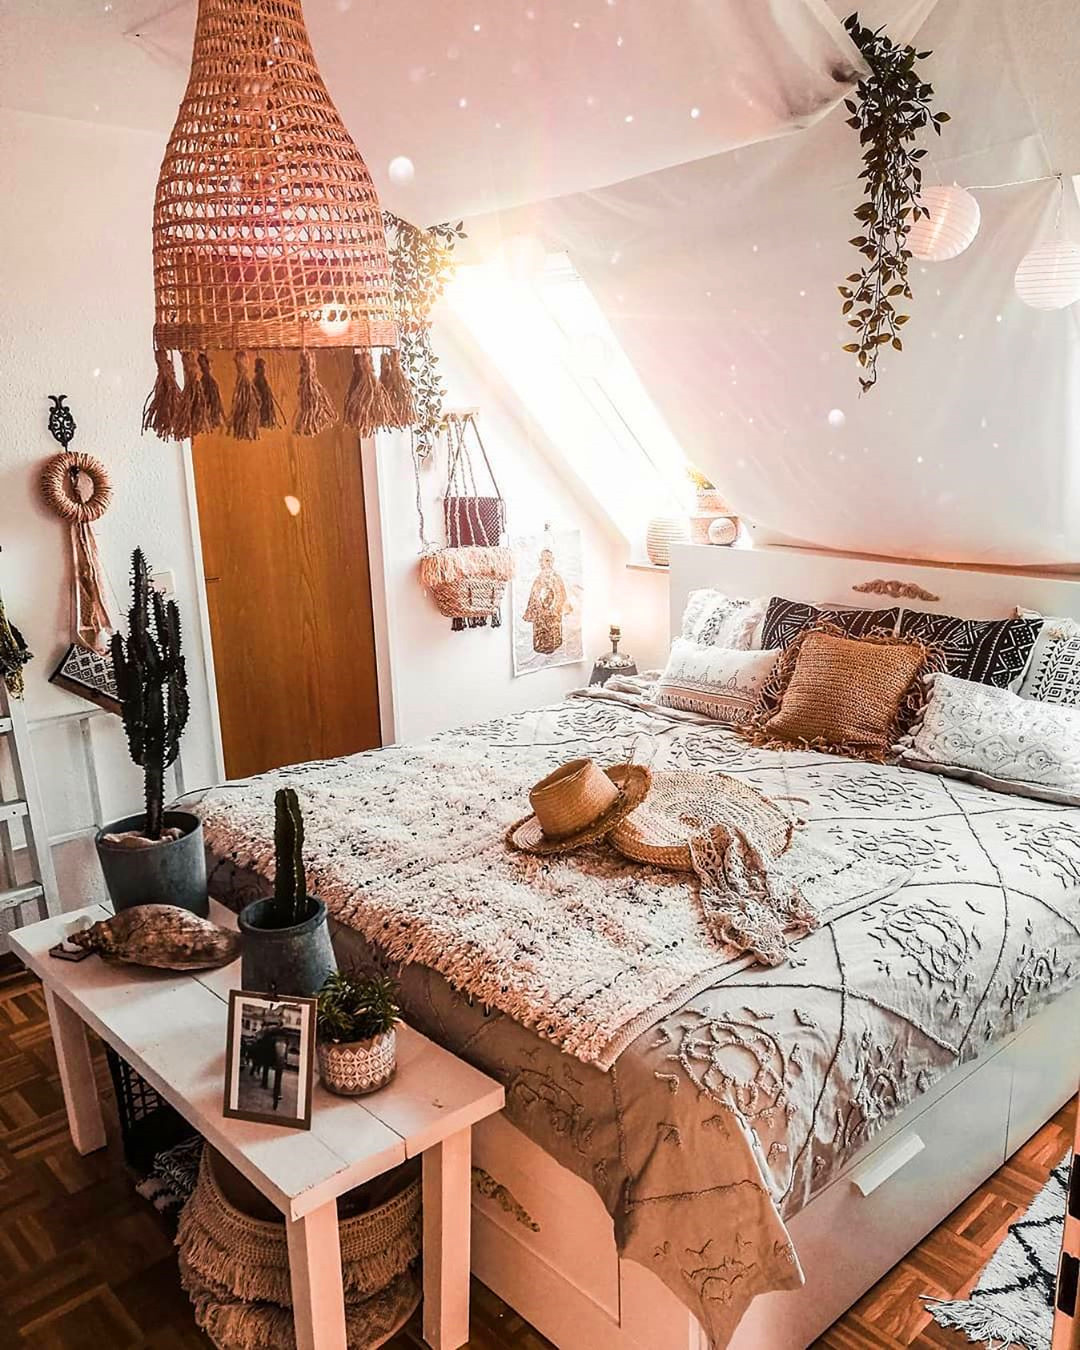 50+ Best Bedroom Decor And Design Ideas With Farmhouse Style